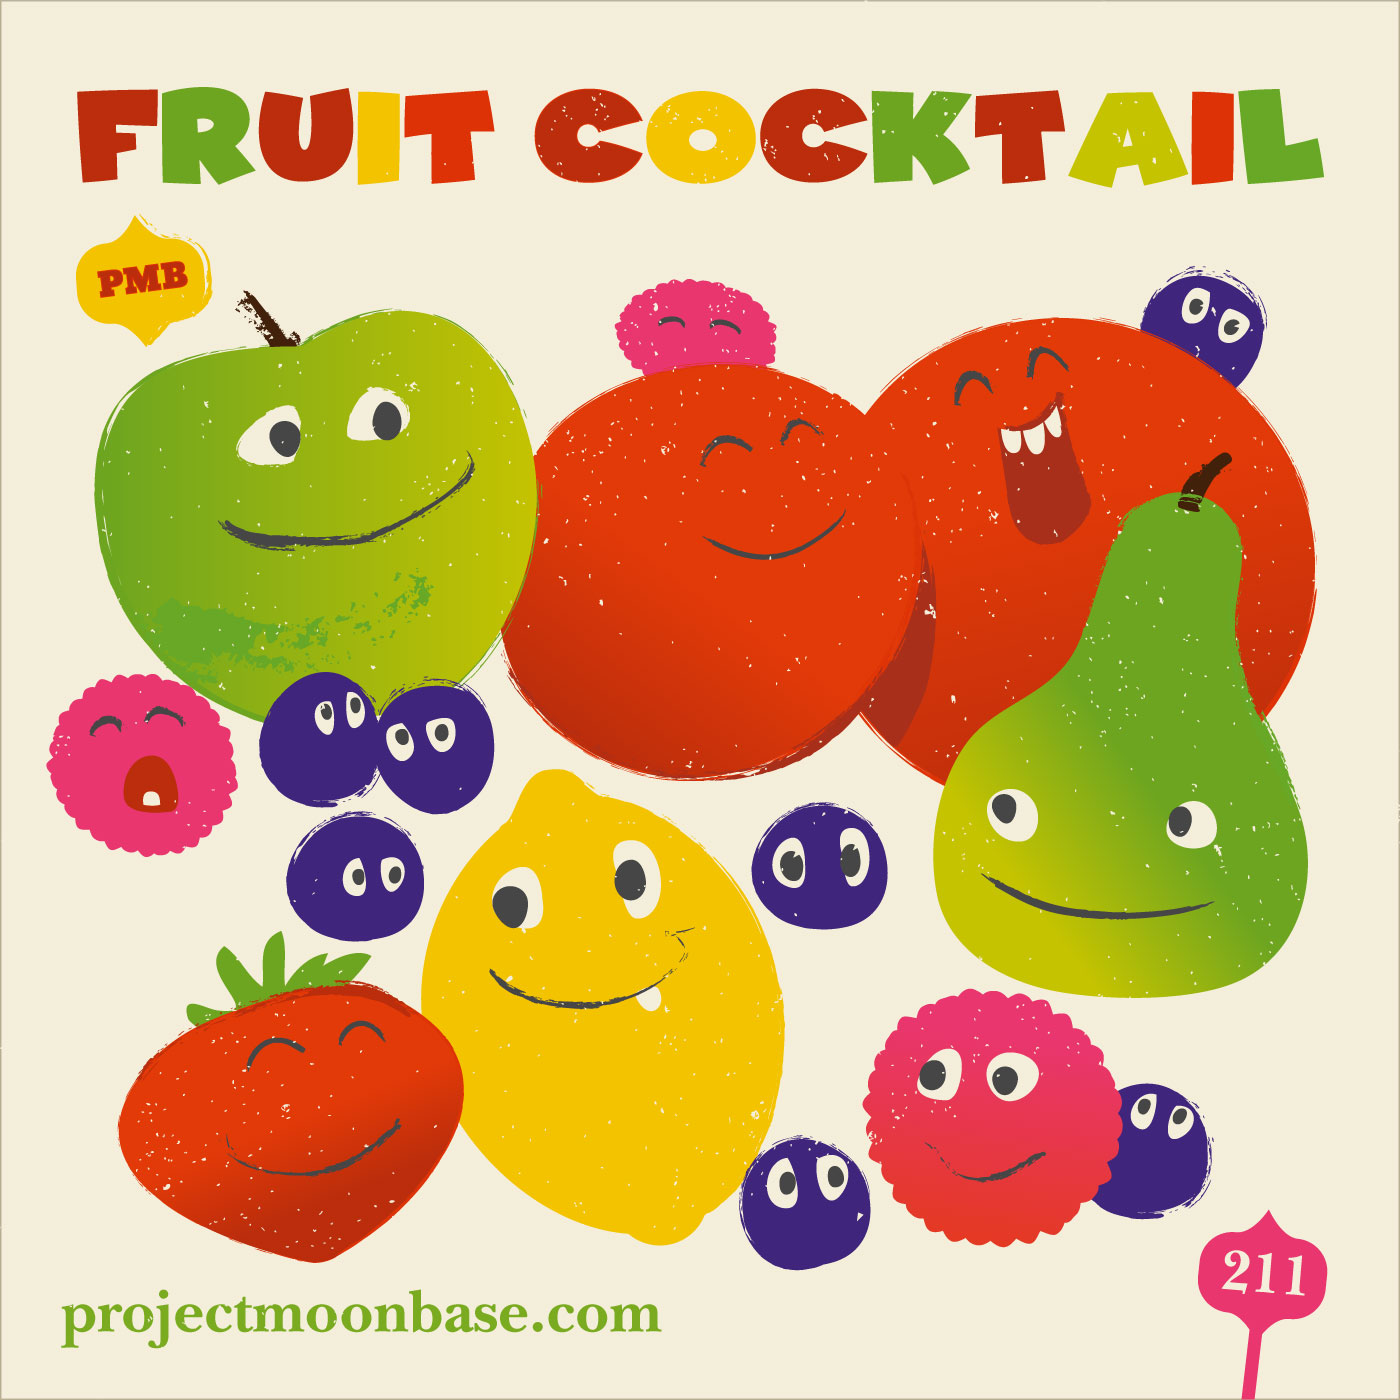 PMB220: Fruit Cocktail